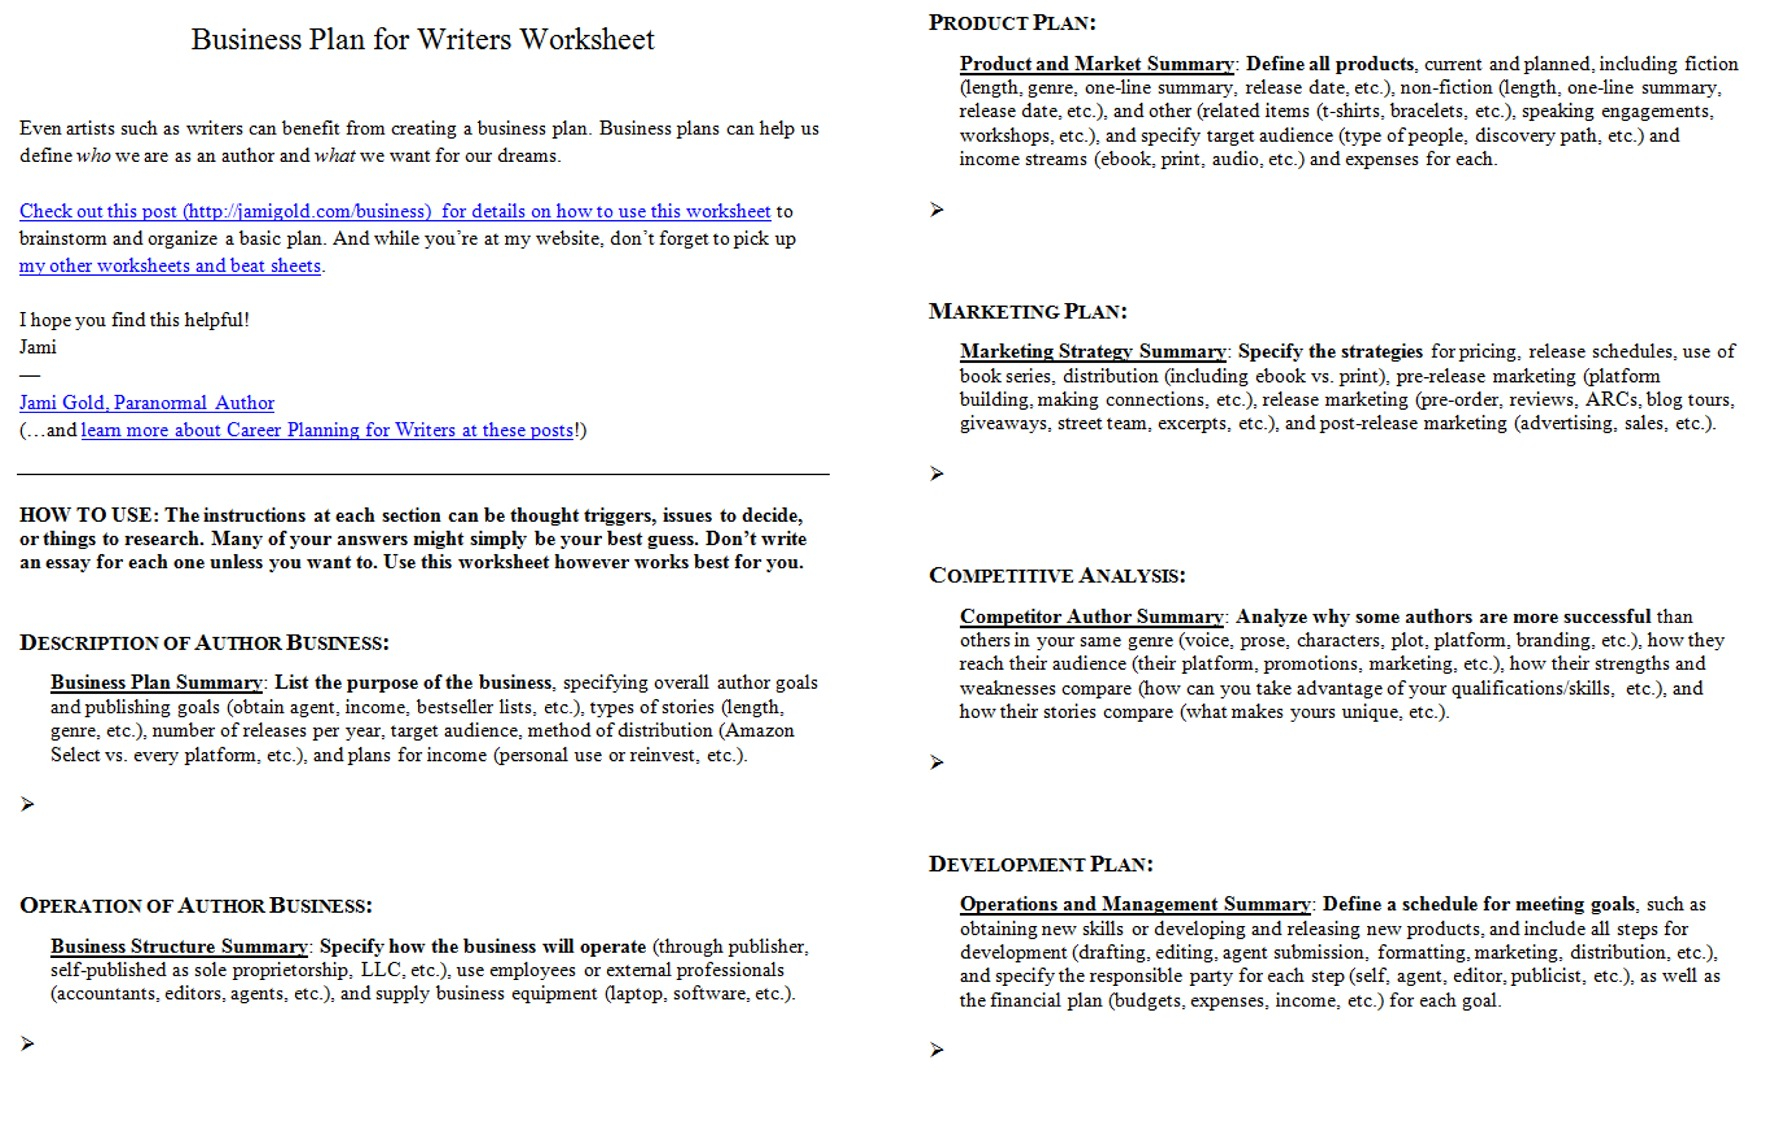 Weirdmailus  Terrific Worksheets For Writers  Jami Gold Paranormal Author With Lovely Screen Shot Of Both Pages Of The Business Plan For Writers Worksheet With Awesome Missing Number Addition Worksheets Also Animal Farm Worksheet In Addition Geometry Th Grade Worksheets And Lewis Diagram Worksheet As Well As Factoring Algebraic Expressions Worksheets Additionally Area Irregular Shapes Worksheet From Jamigoldcom With Weirdmailus  Lovely Worksheets For Writers  Jami Gold Paranormal Author With Awesome Screen Shot Of Both Pages Of The Business Plan For Writers Worksheet And Terrific Missing Number Addition Worksheets Also Animal Farm Worksheet In Addition Geometry Th Grade Worksheets From Jamigoldcom